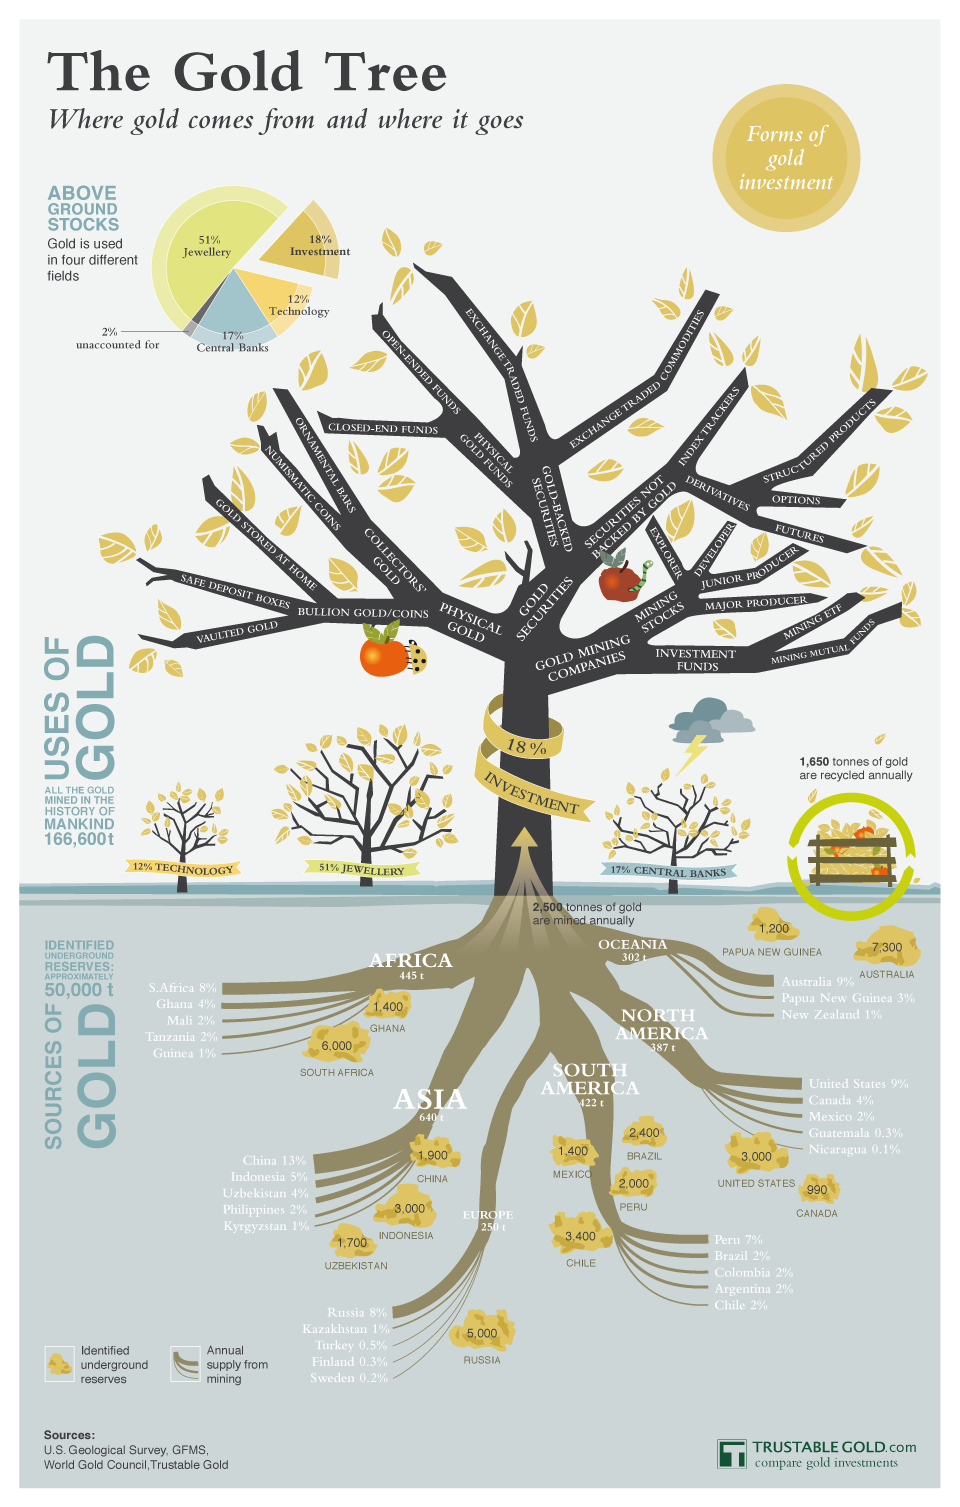 The Gold Tree: Where Gold Comes From